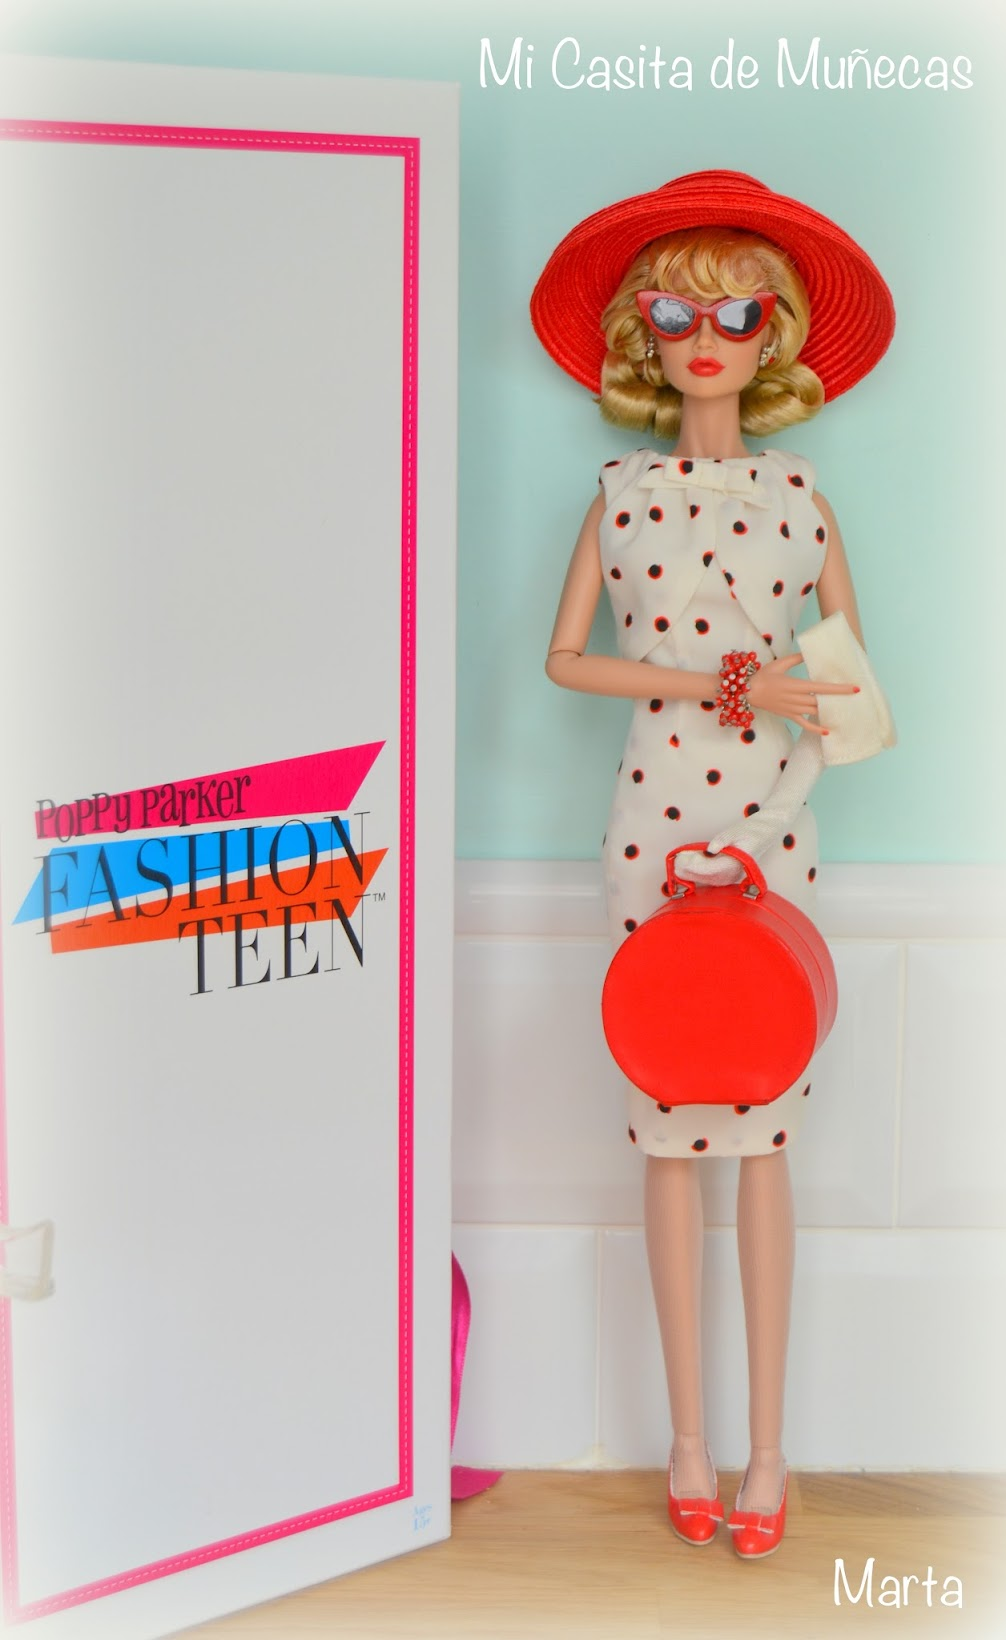 Poppy Parker One fine day, Integrity Toys 2012. Mi Casita de muñecas.